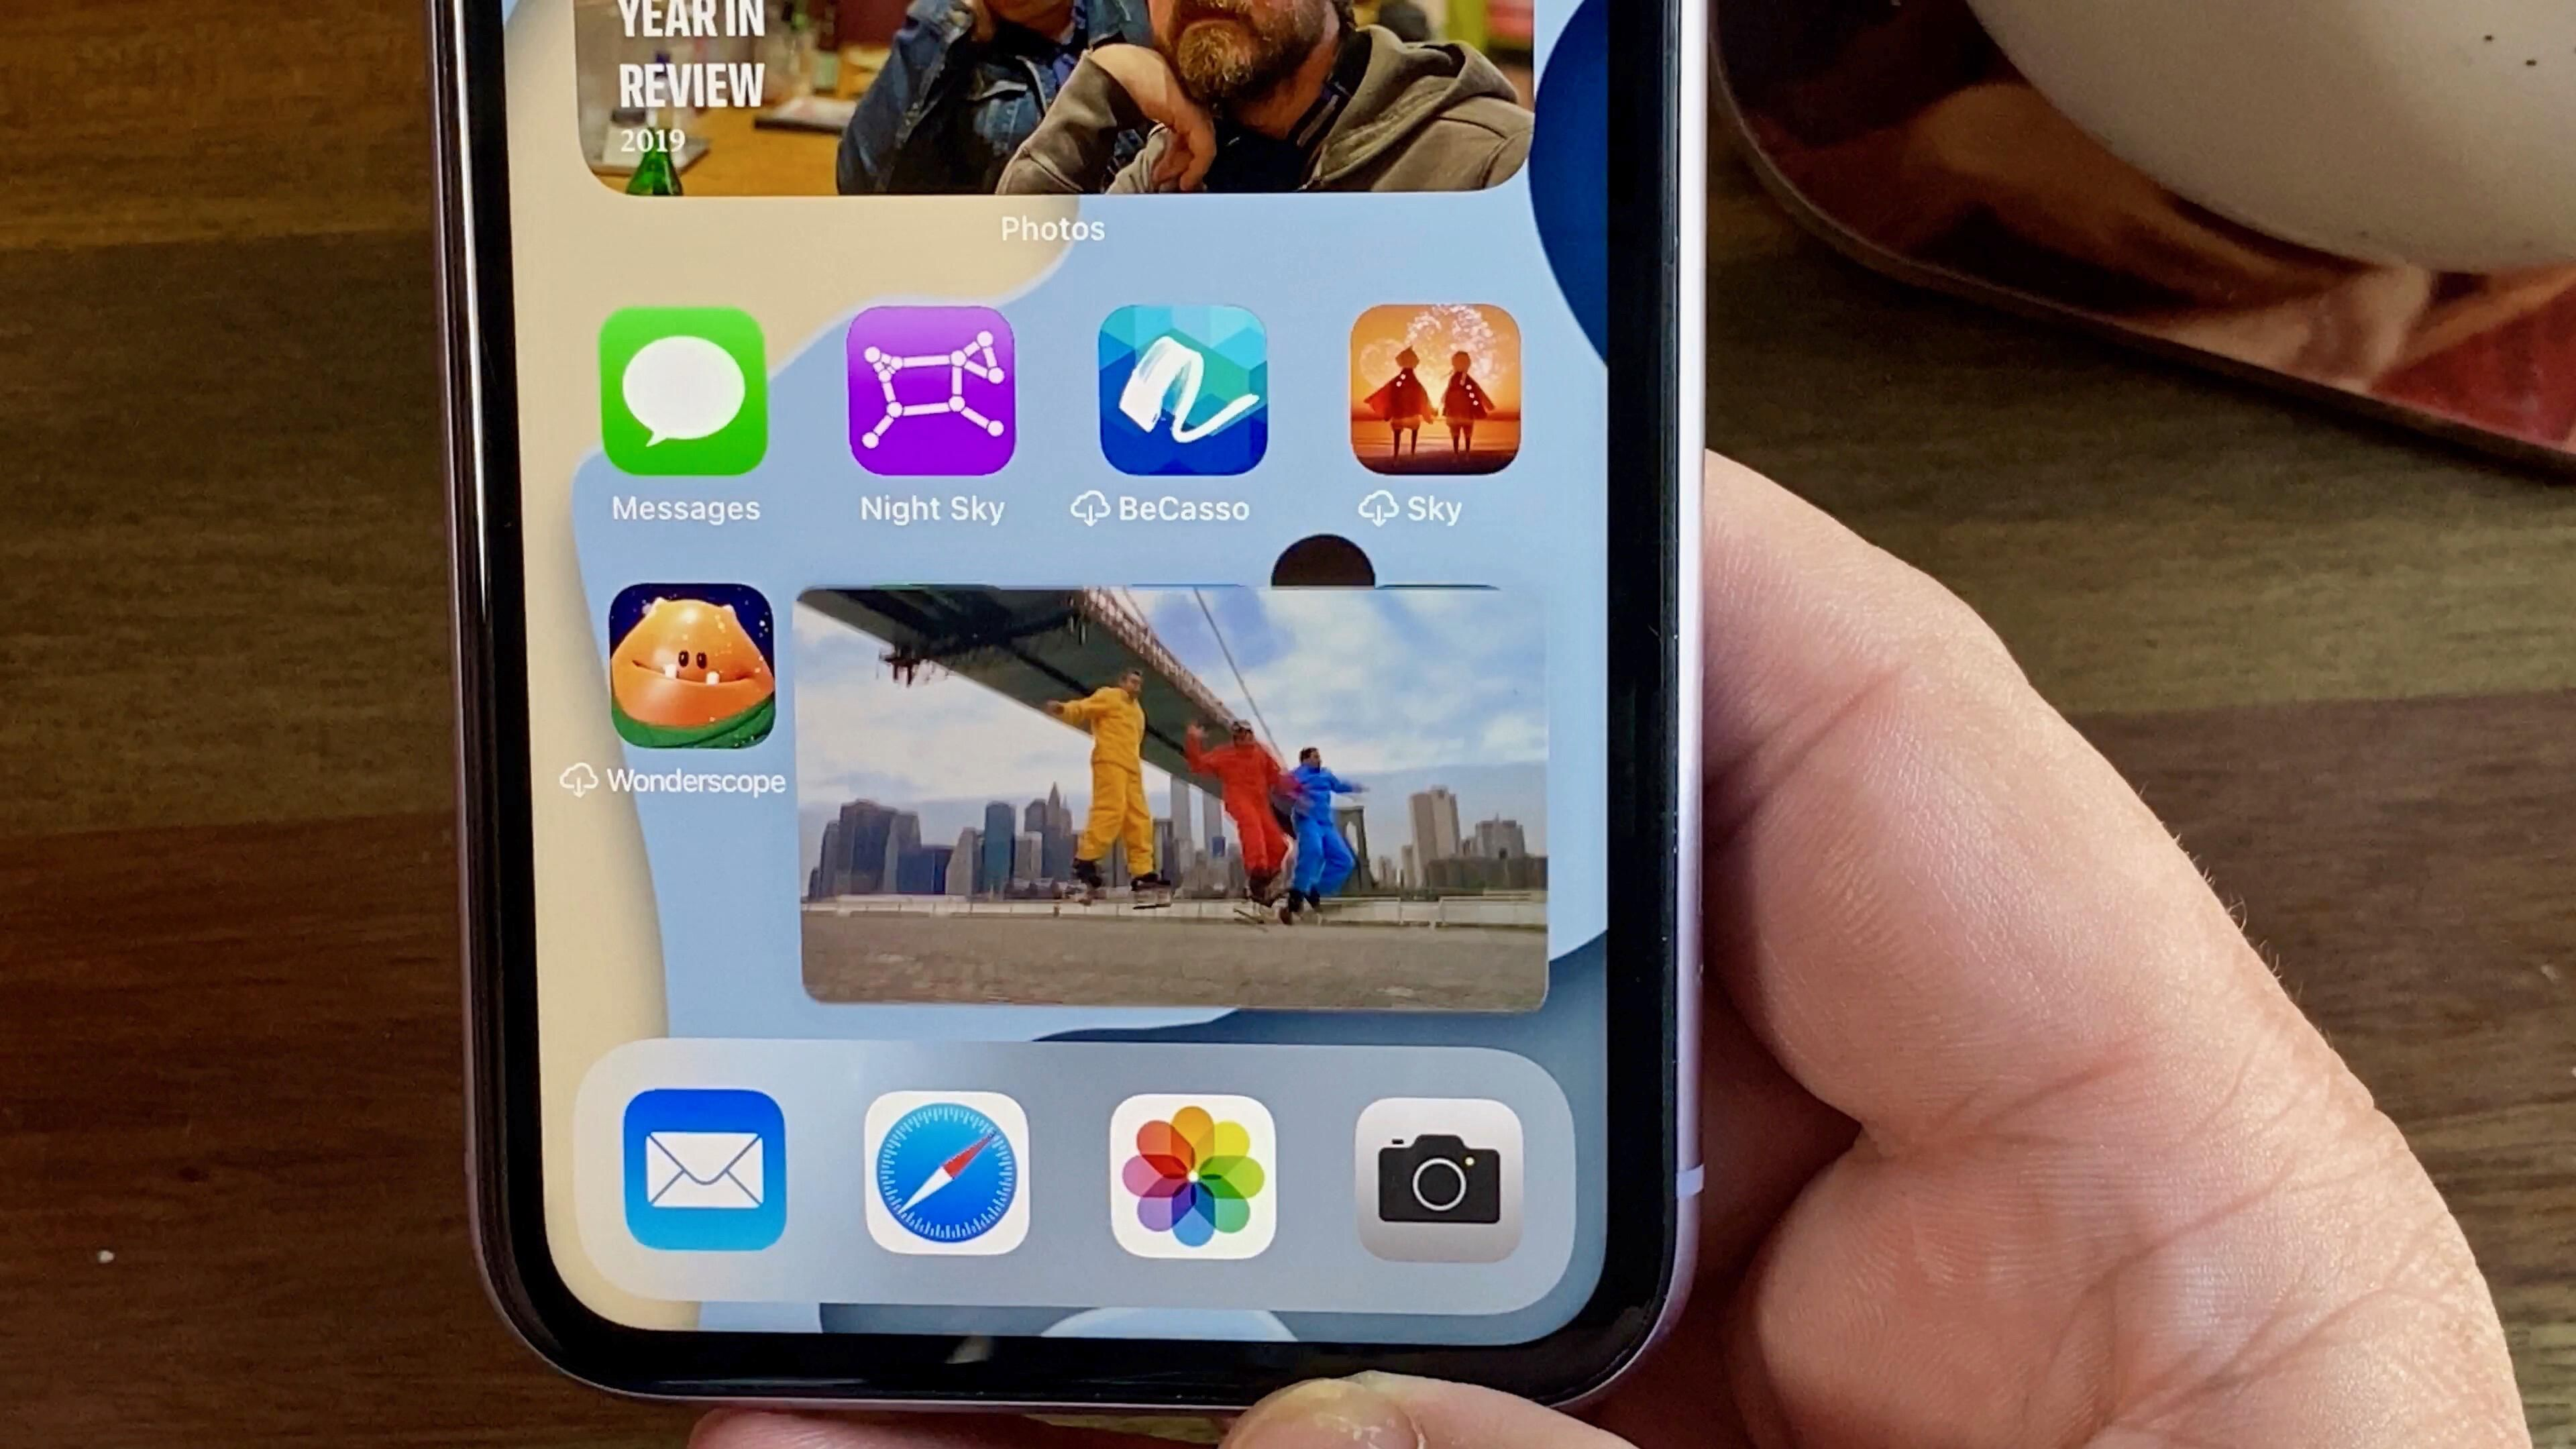 6 Best Ios 14 Features Try These On Your Iphone As Soon As You Upgrade Iphone Operating System Iphone Settings App